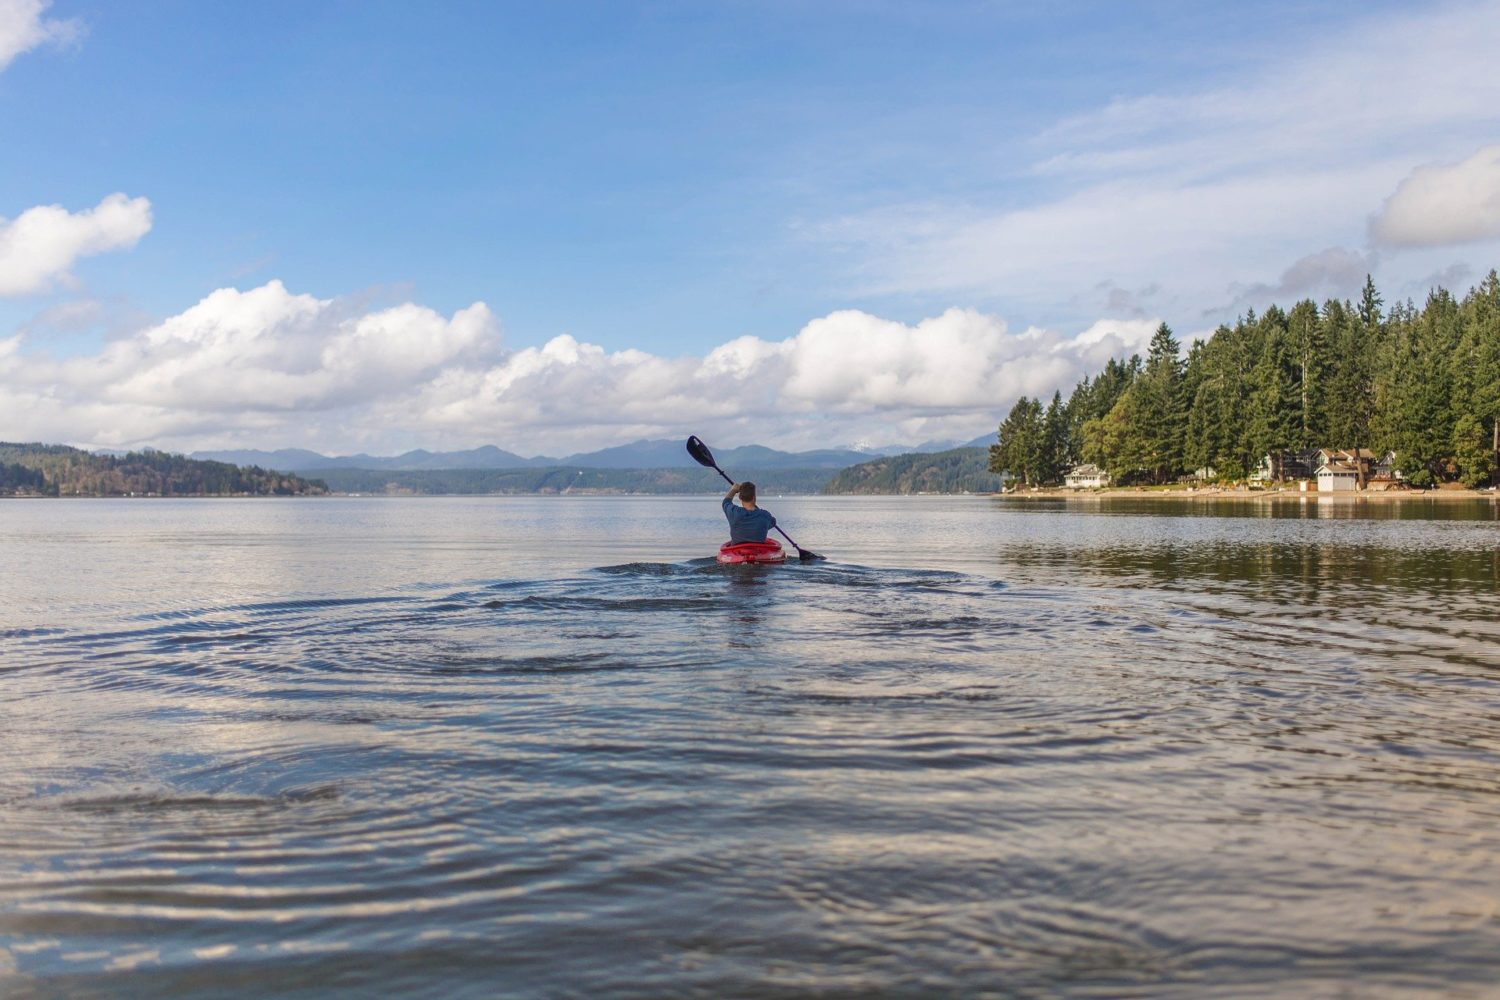 Take some time to explore the beautiful Lake Coeur d'Alene by kayak - the best way!